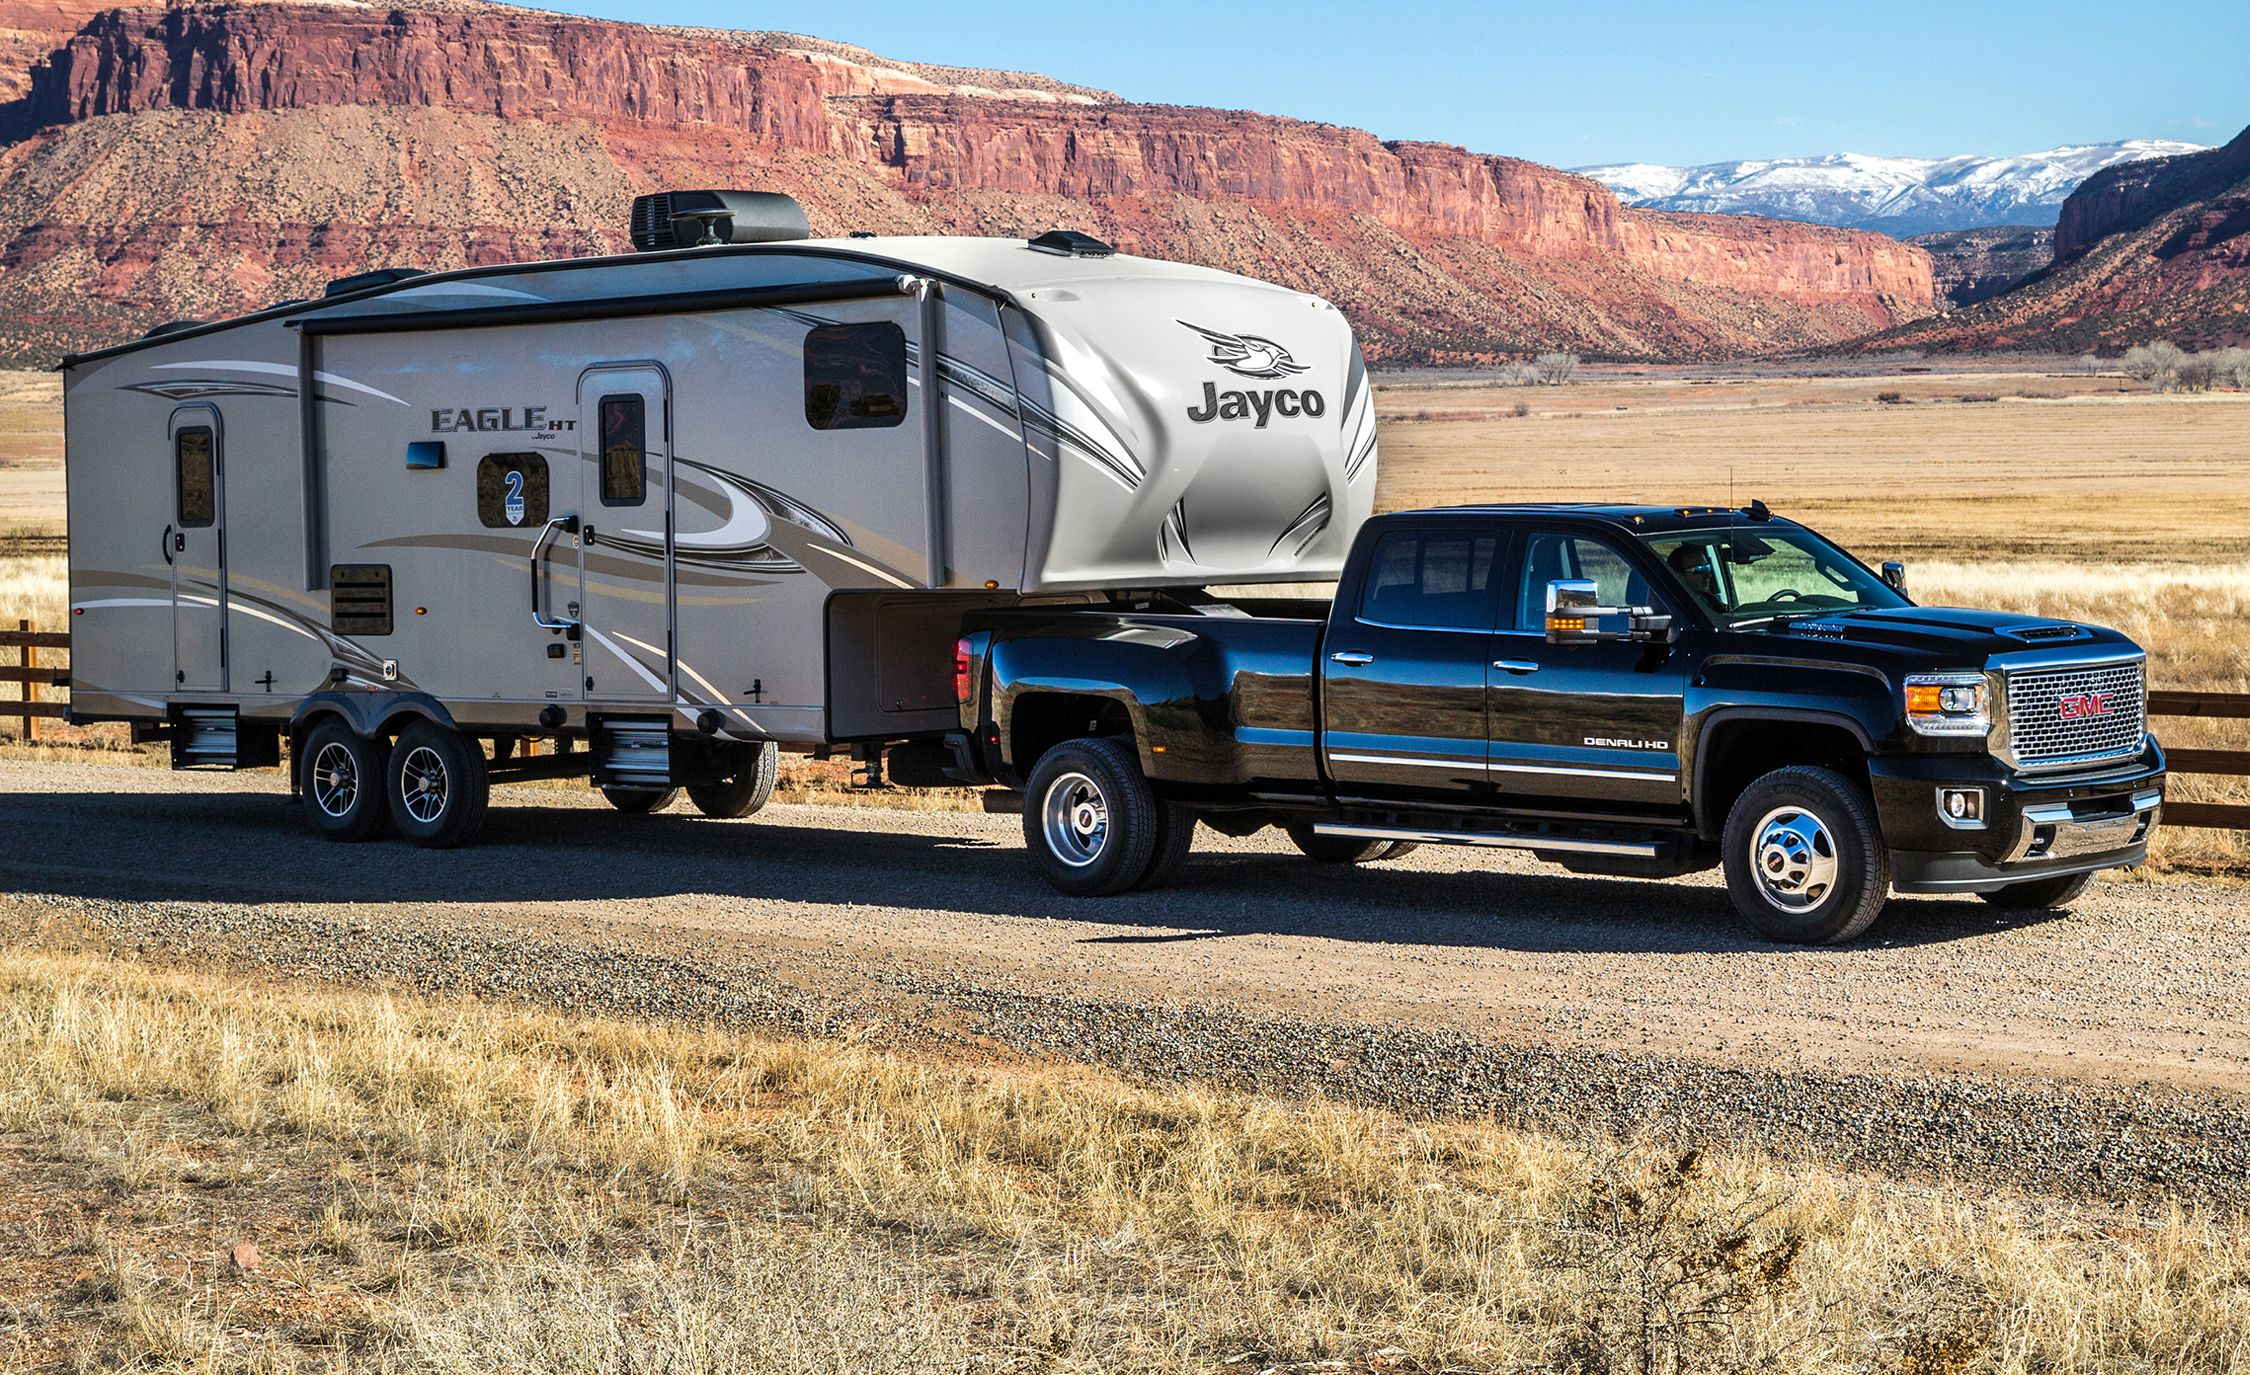 2017 gmc sierra 2500hd 3500hd first drive review car and driver rh caranddriver com Fifth Wheel Hauling a GMC Sierra 2013 GMC Sierra Towing Capacity